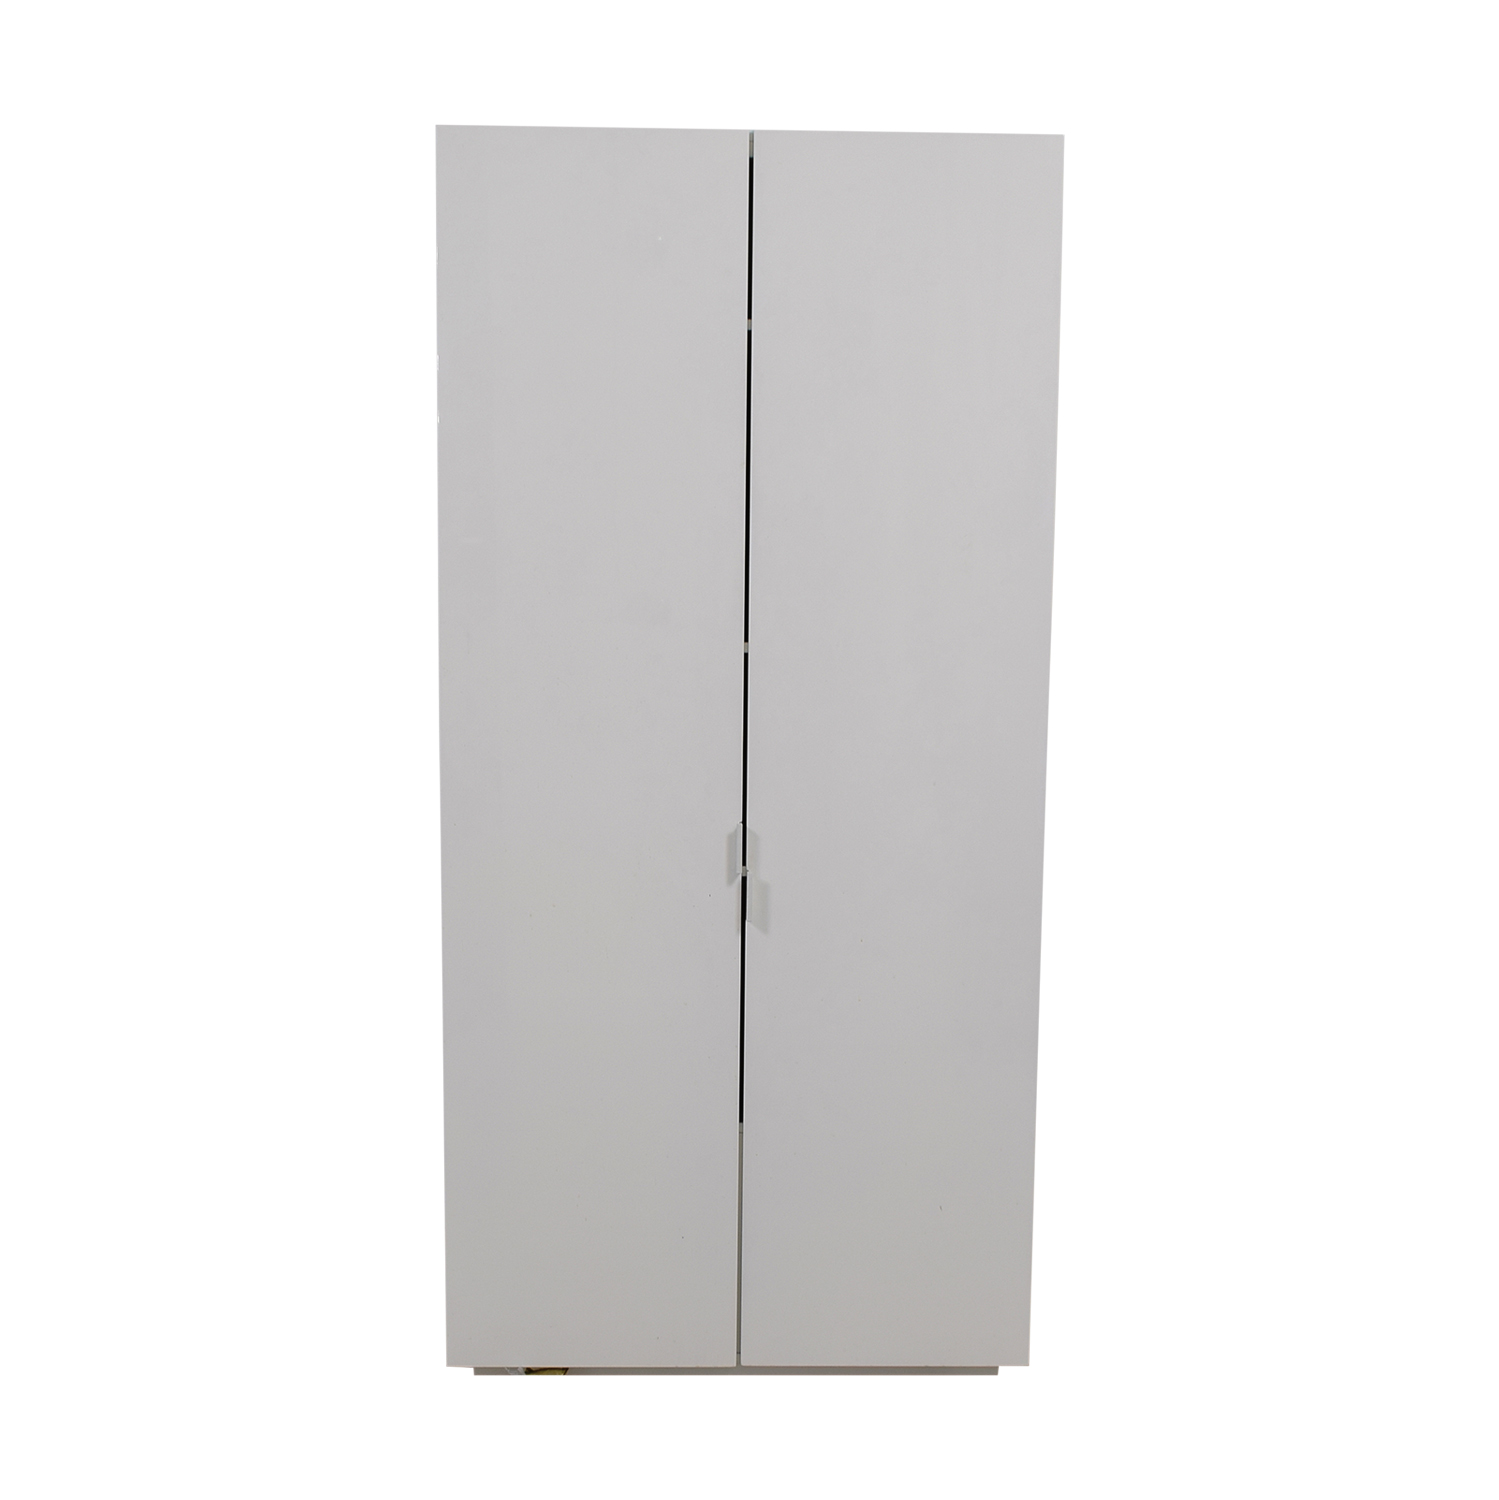 buy CB2 CB2 White Lacquer Wall Wardrobe with Shelves online